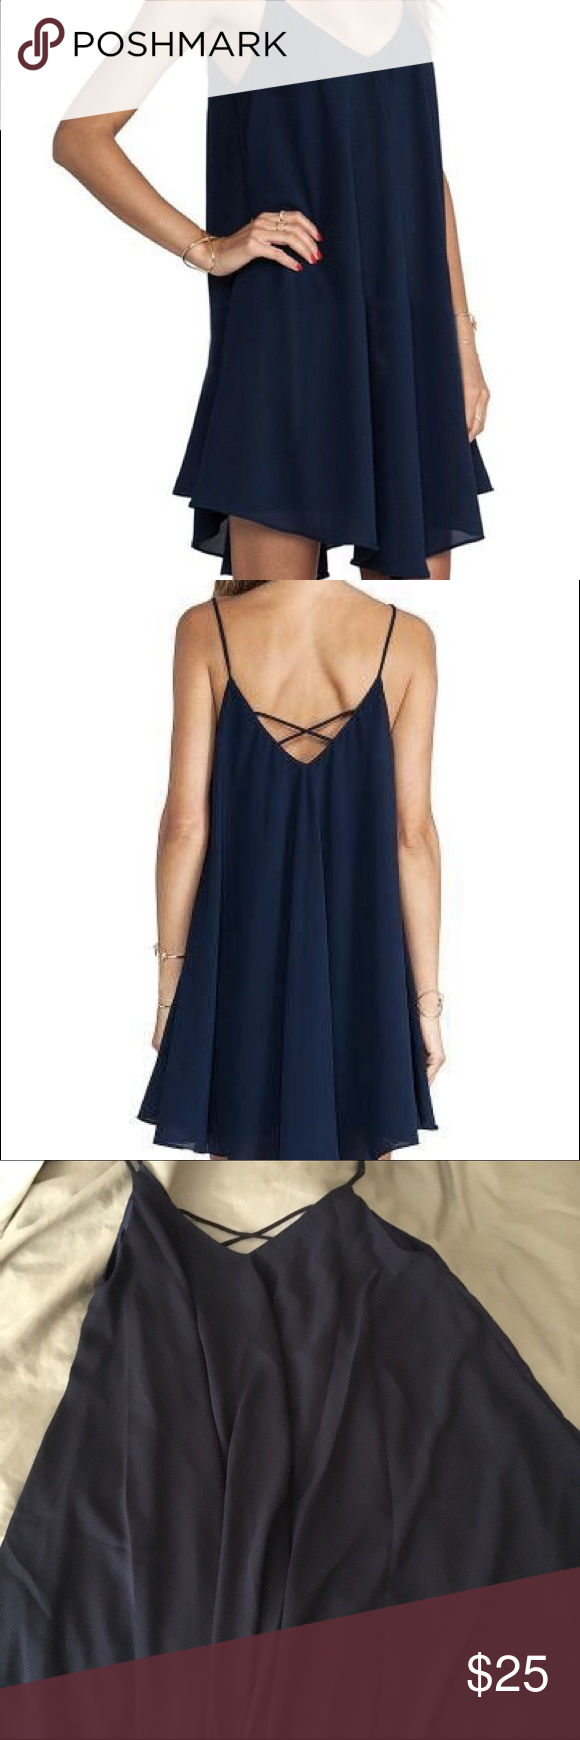 Blue Cami Shift Dress Blue shift dress, perfect for summer days out! Only worn once! Dresses